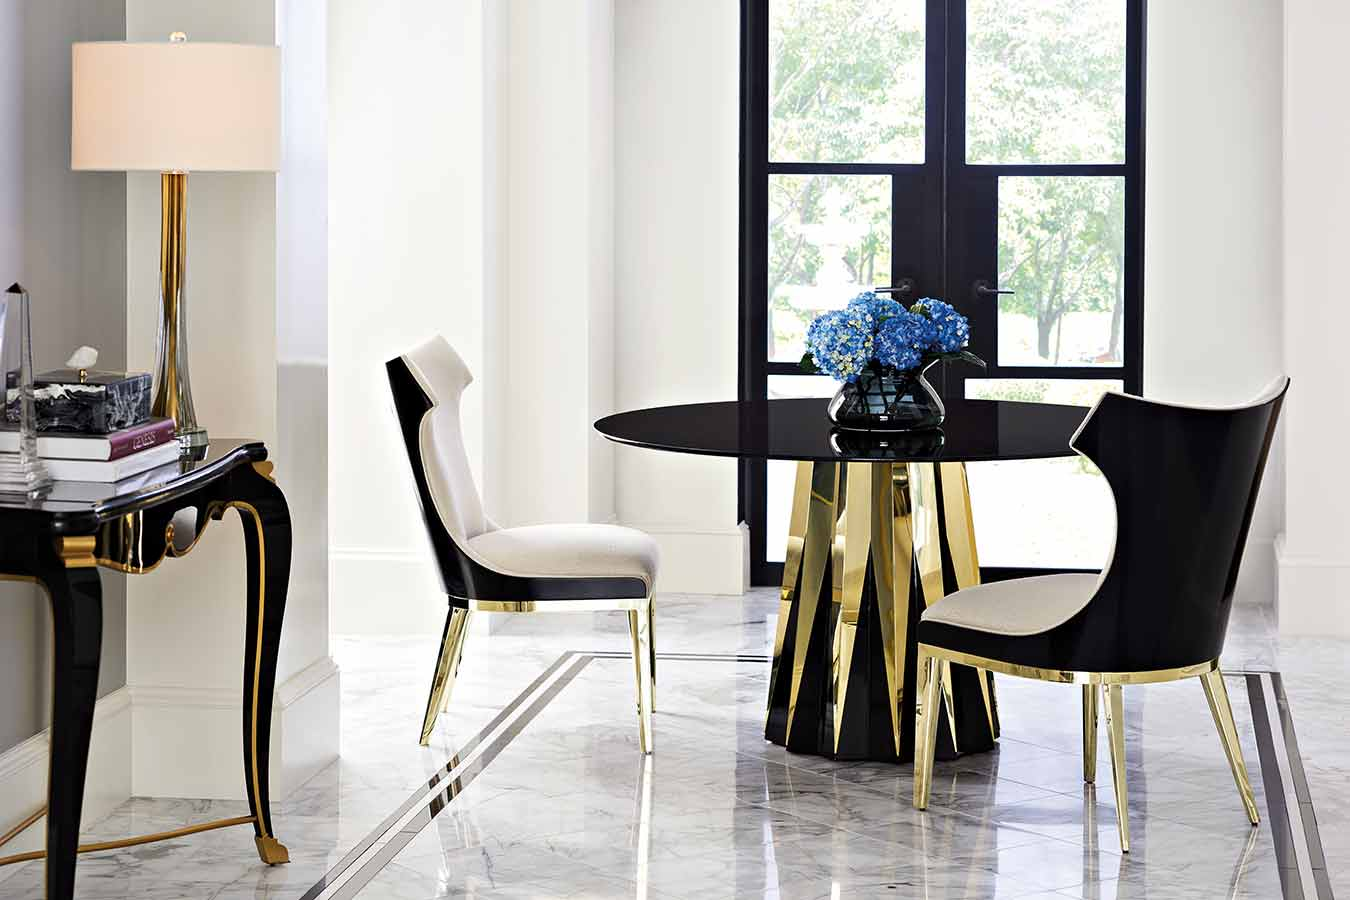 Signature Promethian Collection Living Areas | Contemporary Modern Luxury Exclusive Designer Handcrafted Furniture | Sandton Johannesburg